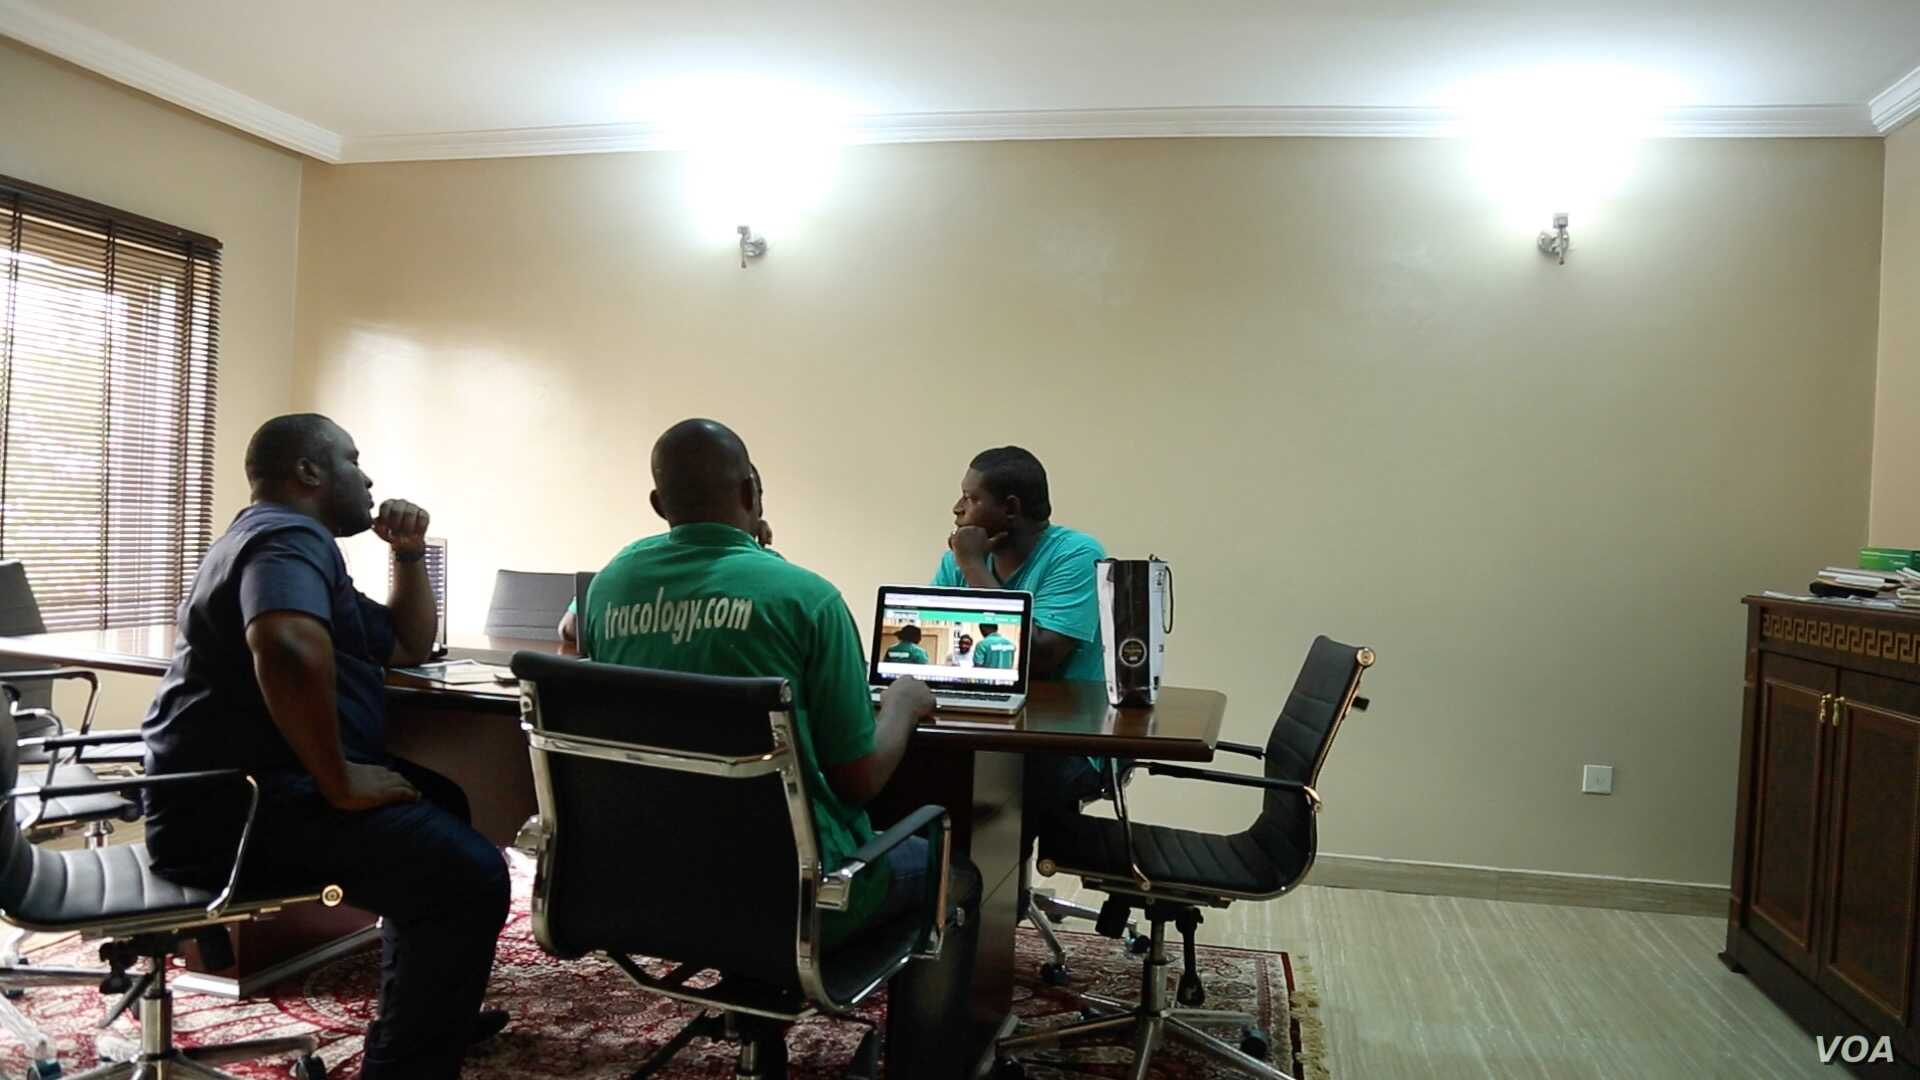 Emma Okena, CEO of Tracology, and his team meet to discuss how to move their startup company forward in Abuja, Nigeria, Sept. 5, 2016. Tracology is a payment management system that uses a barcode to allow users and the government to track utility bil...